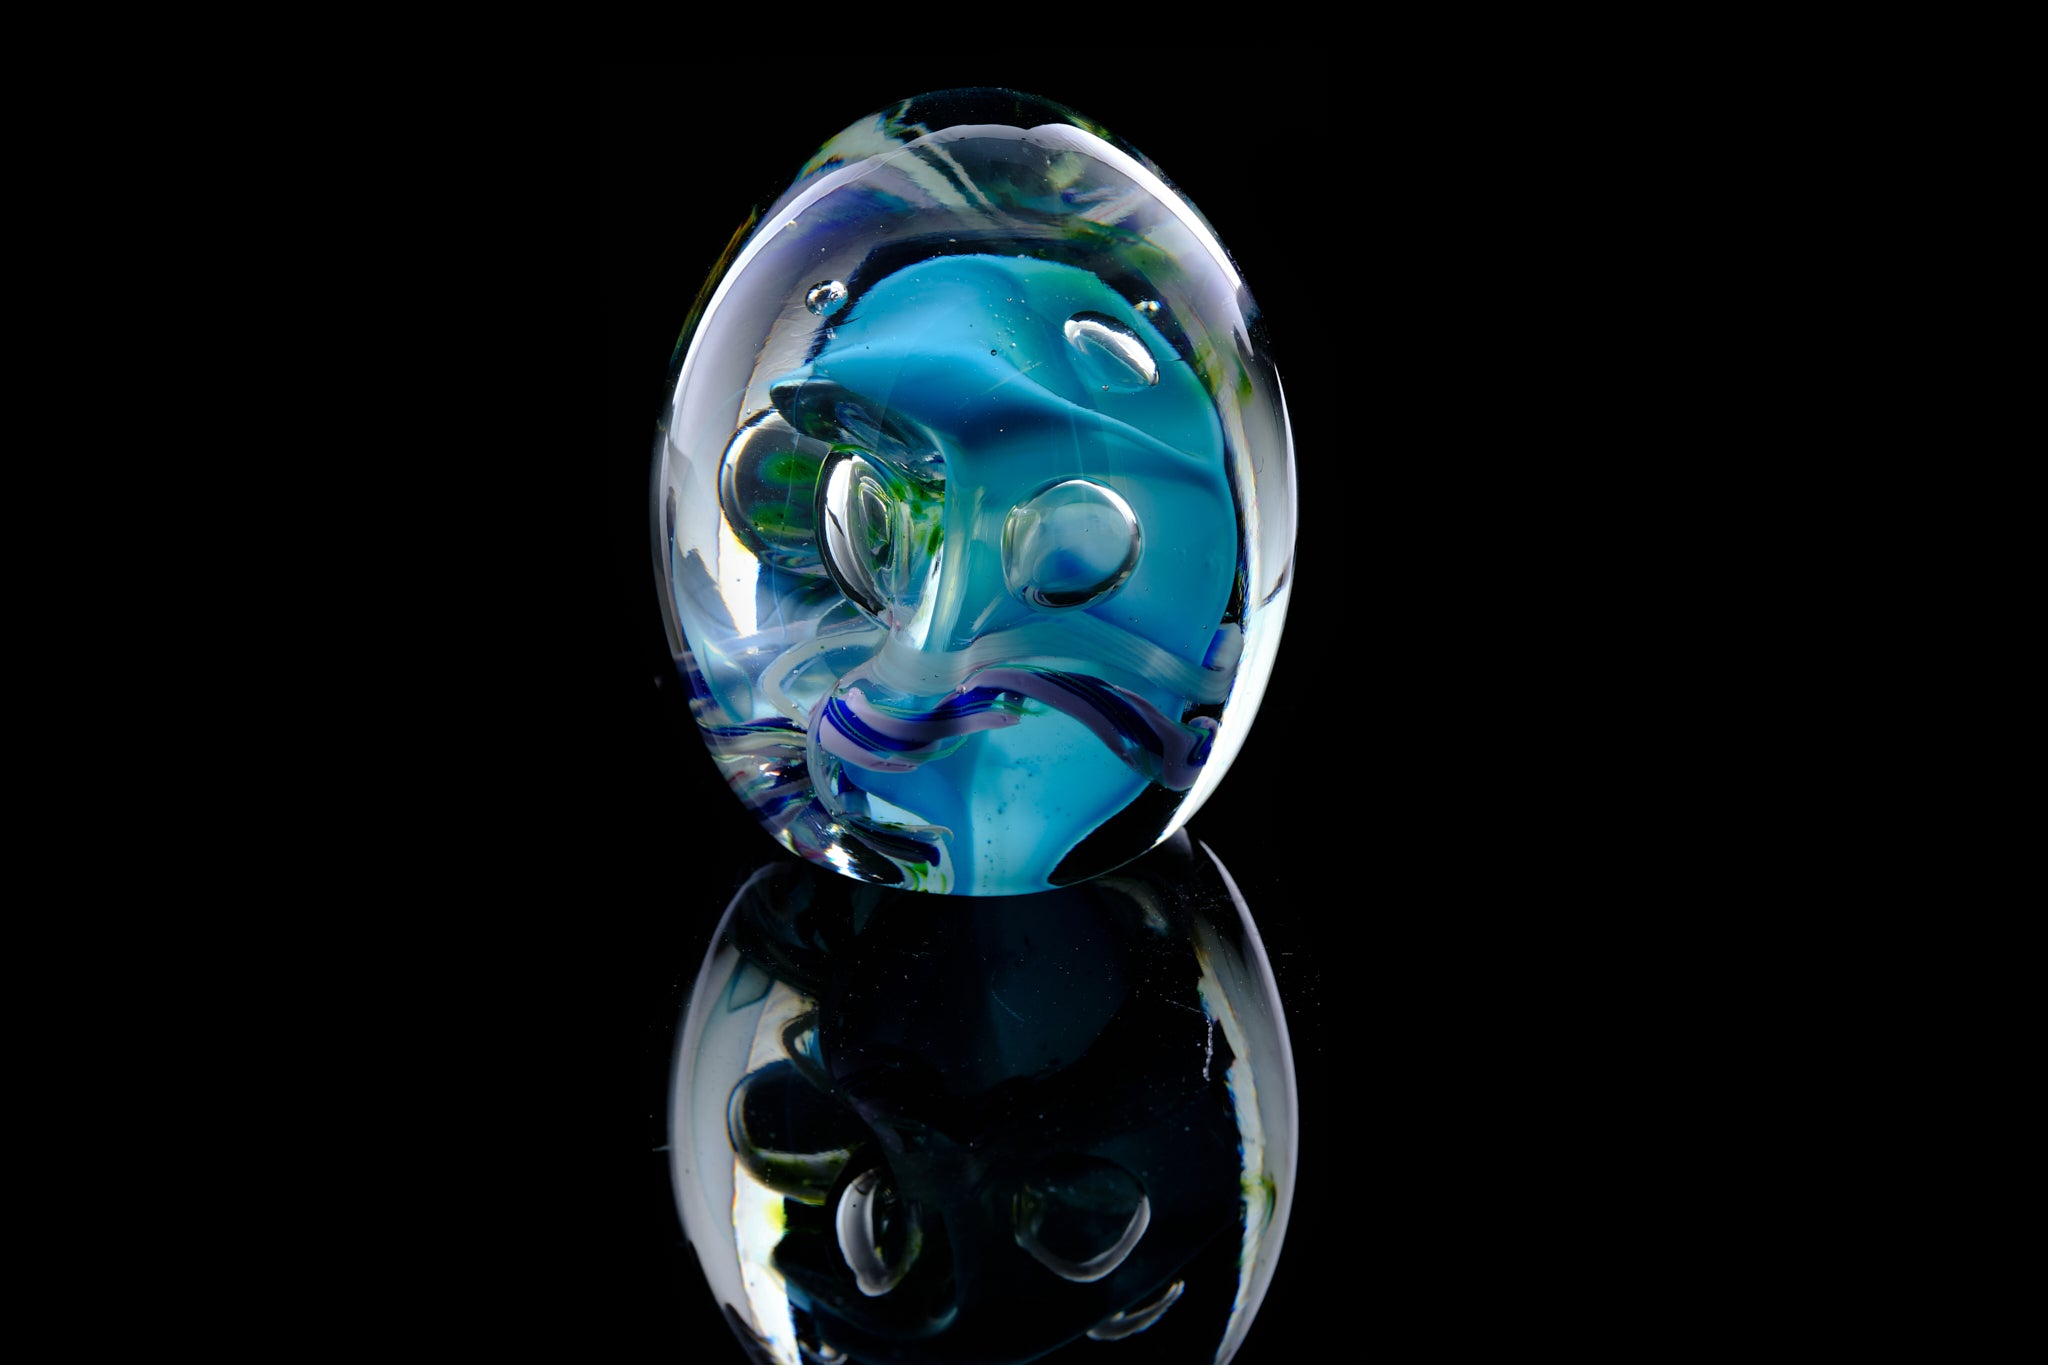 Contemporary Paperweight by Peter Viesnik.